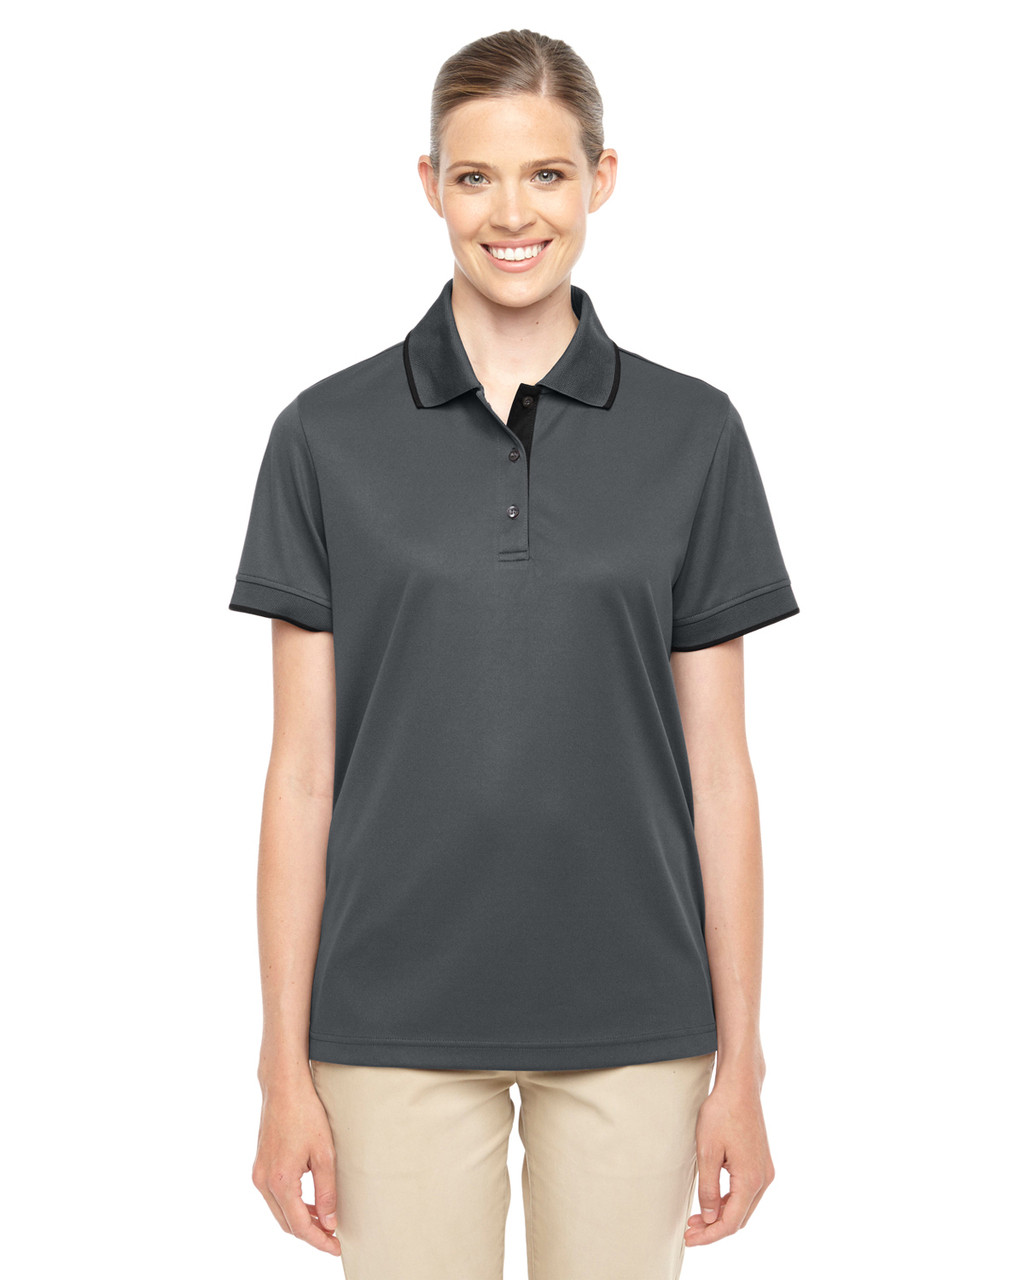 Carbon/Black 78222 Ash City - Core 365 Ladies' Motive Performance Pique Polo Shirt with Tipped Collar | Blankclothing.ca